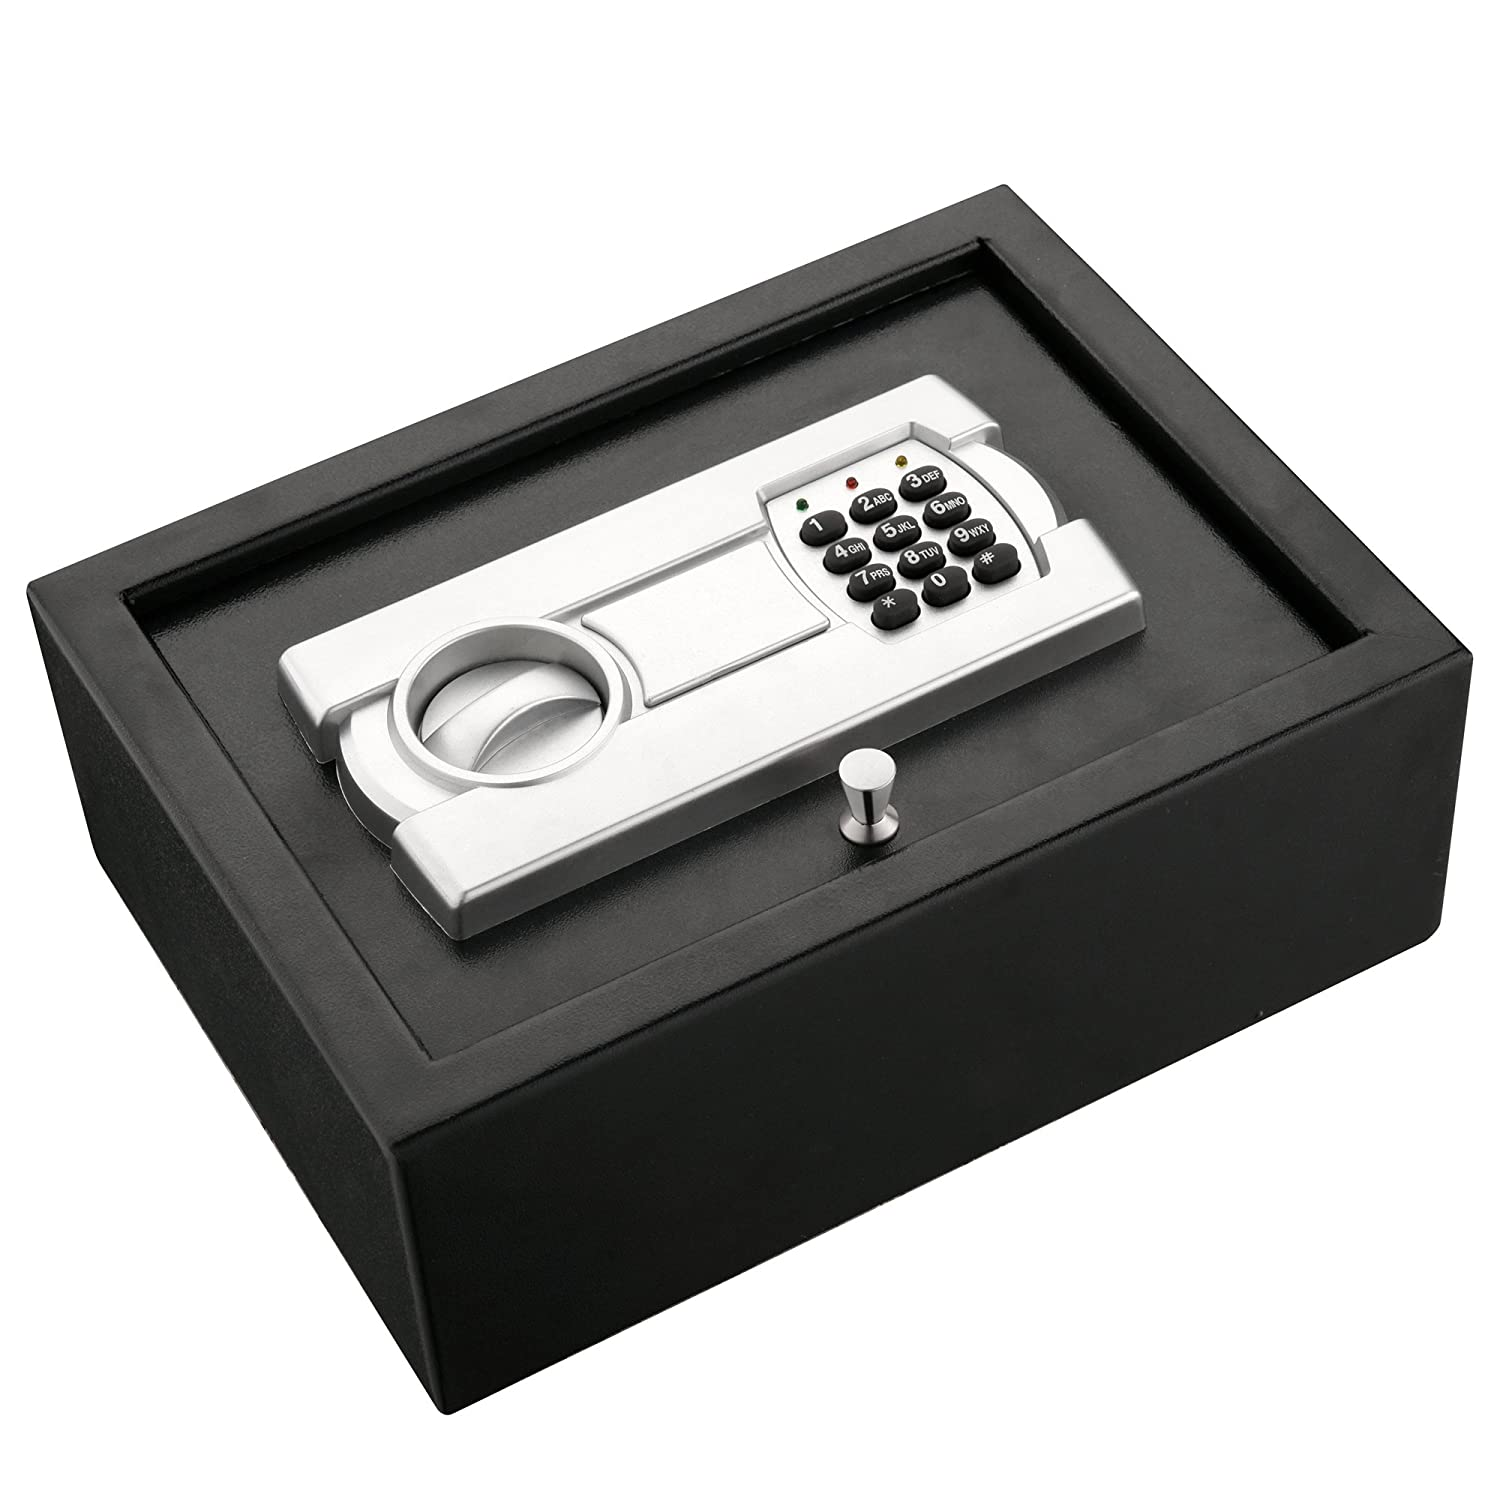 Paragon Lock and Safe Premium .24 CF Drawer Safe for Easy Compact and Sturdy Security